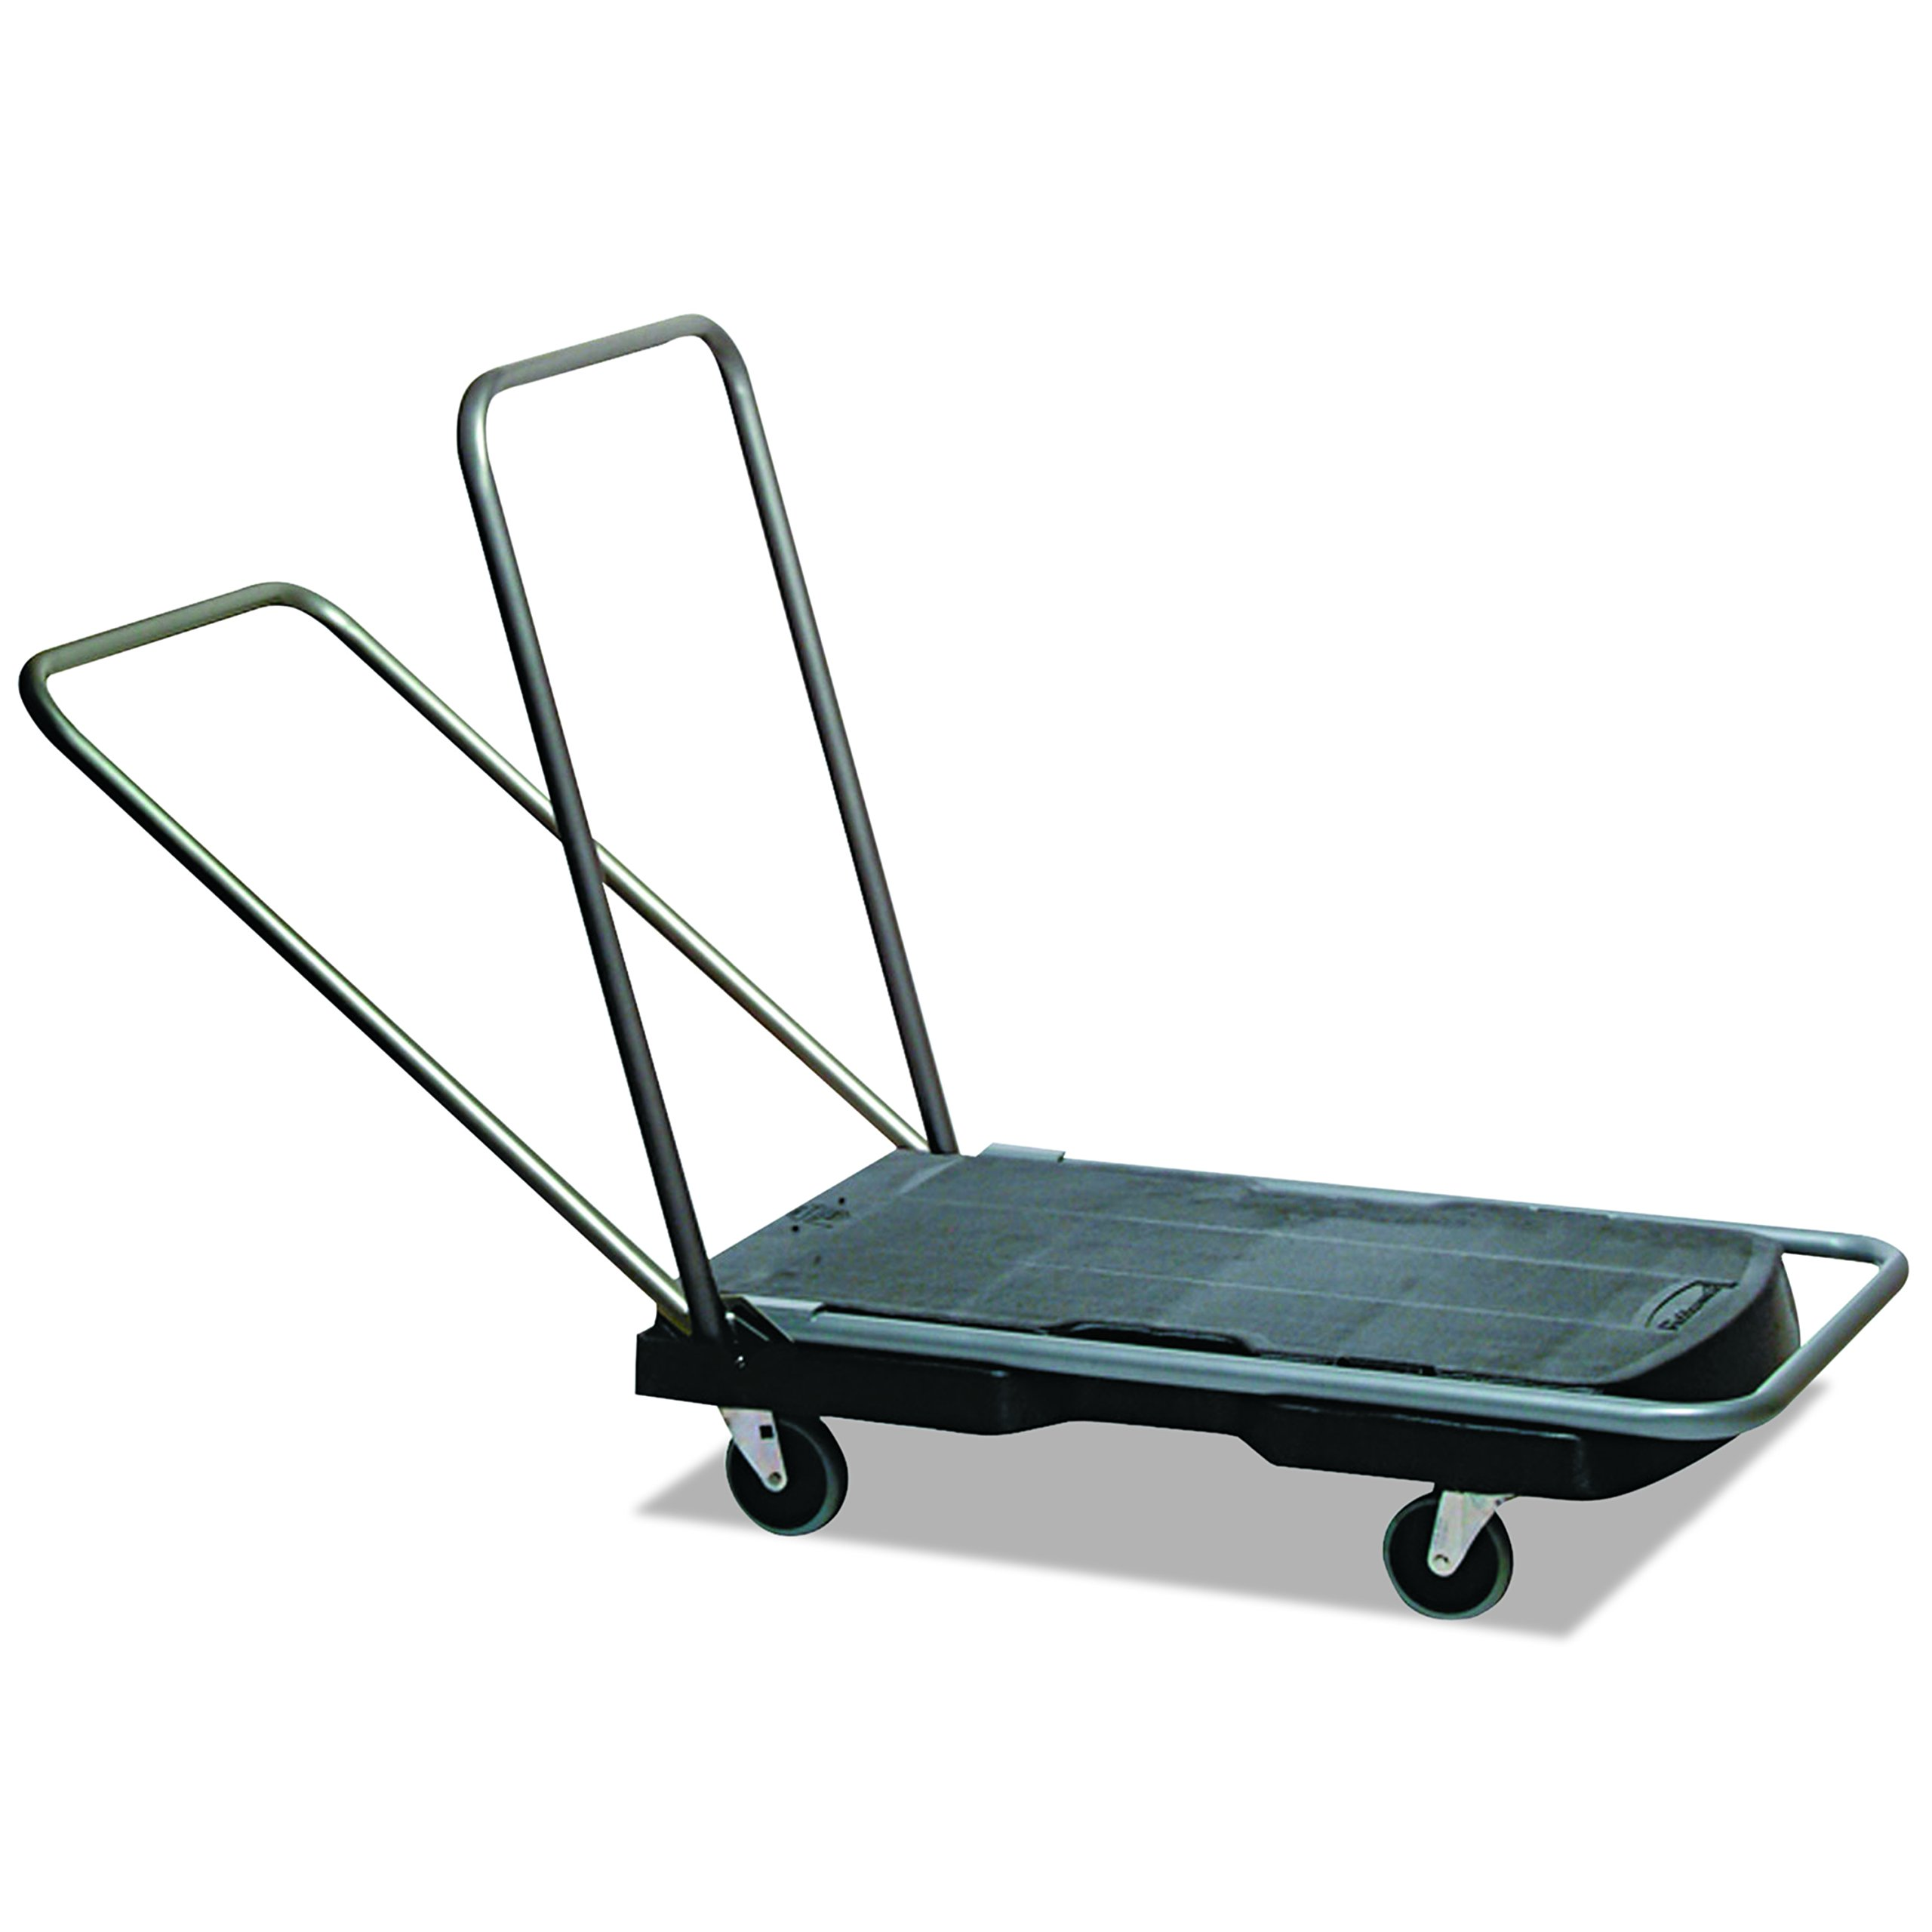 Rubbermaid Commercial 440000 Utility-Duty Home/Office Cart, 250 lb Capacity, 20 1/2'' x 32 1/2'' Platform, BK by Rubbermaid Commercial Products